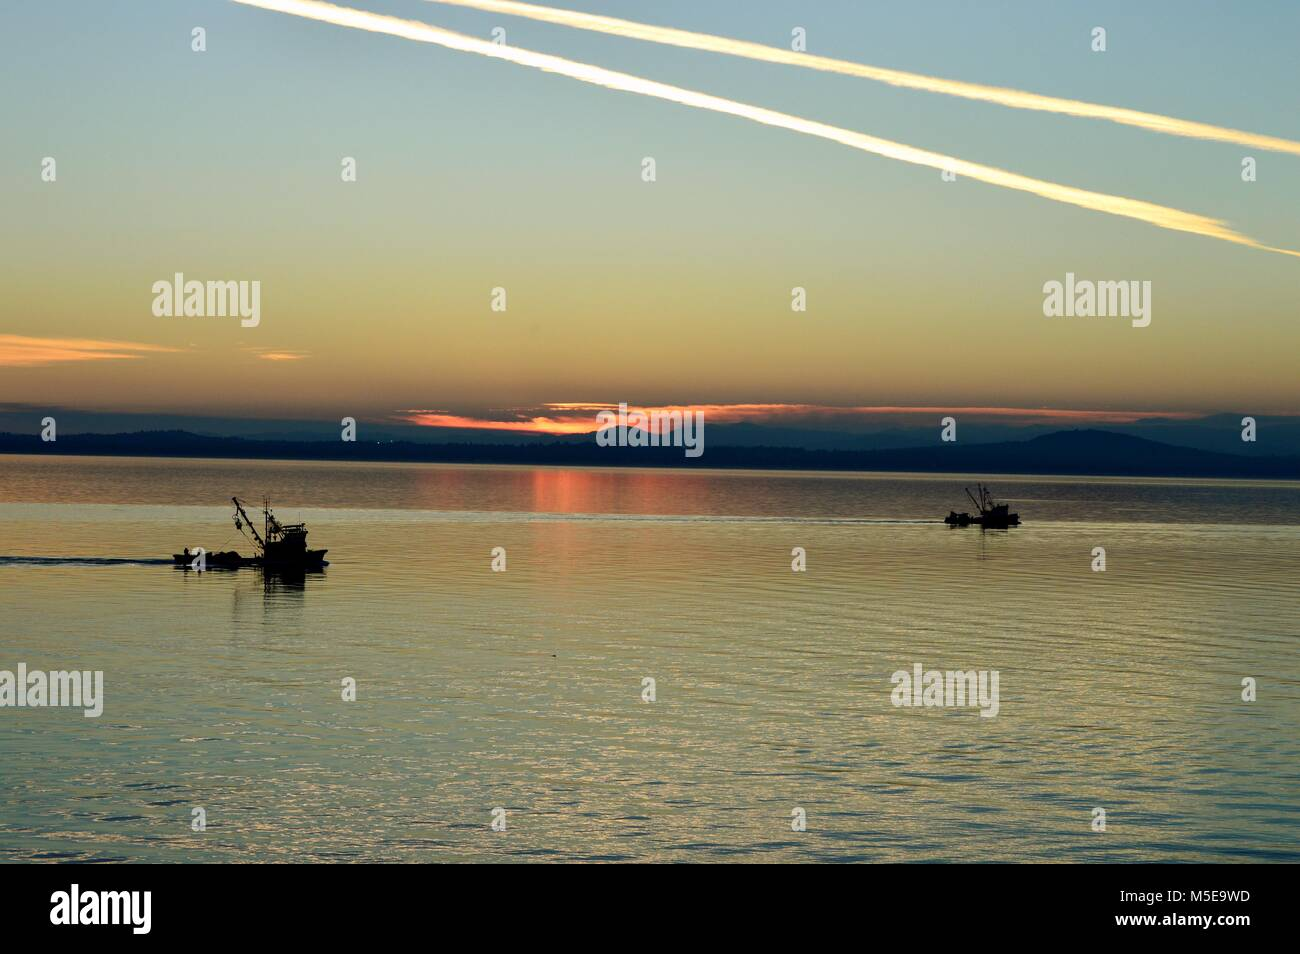 Two purse seiner fishing boats making their way home to Vancouver Island right after sunset - Stock Image